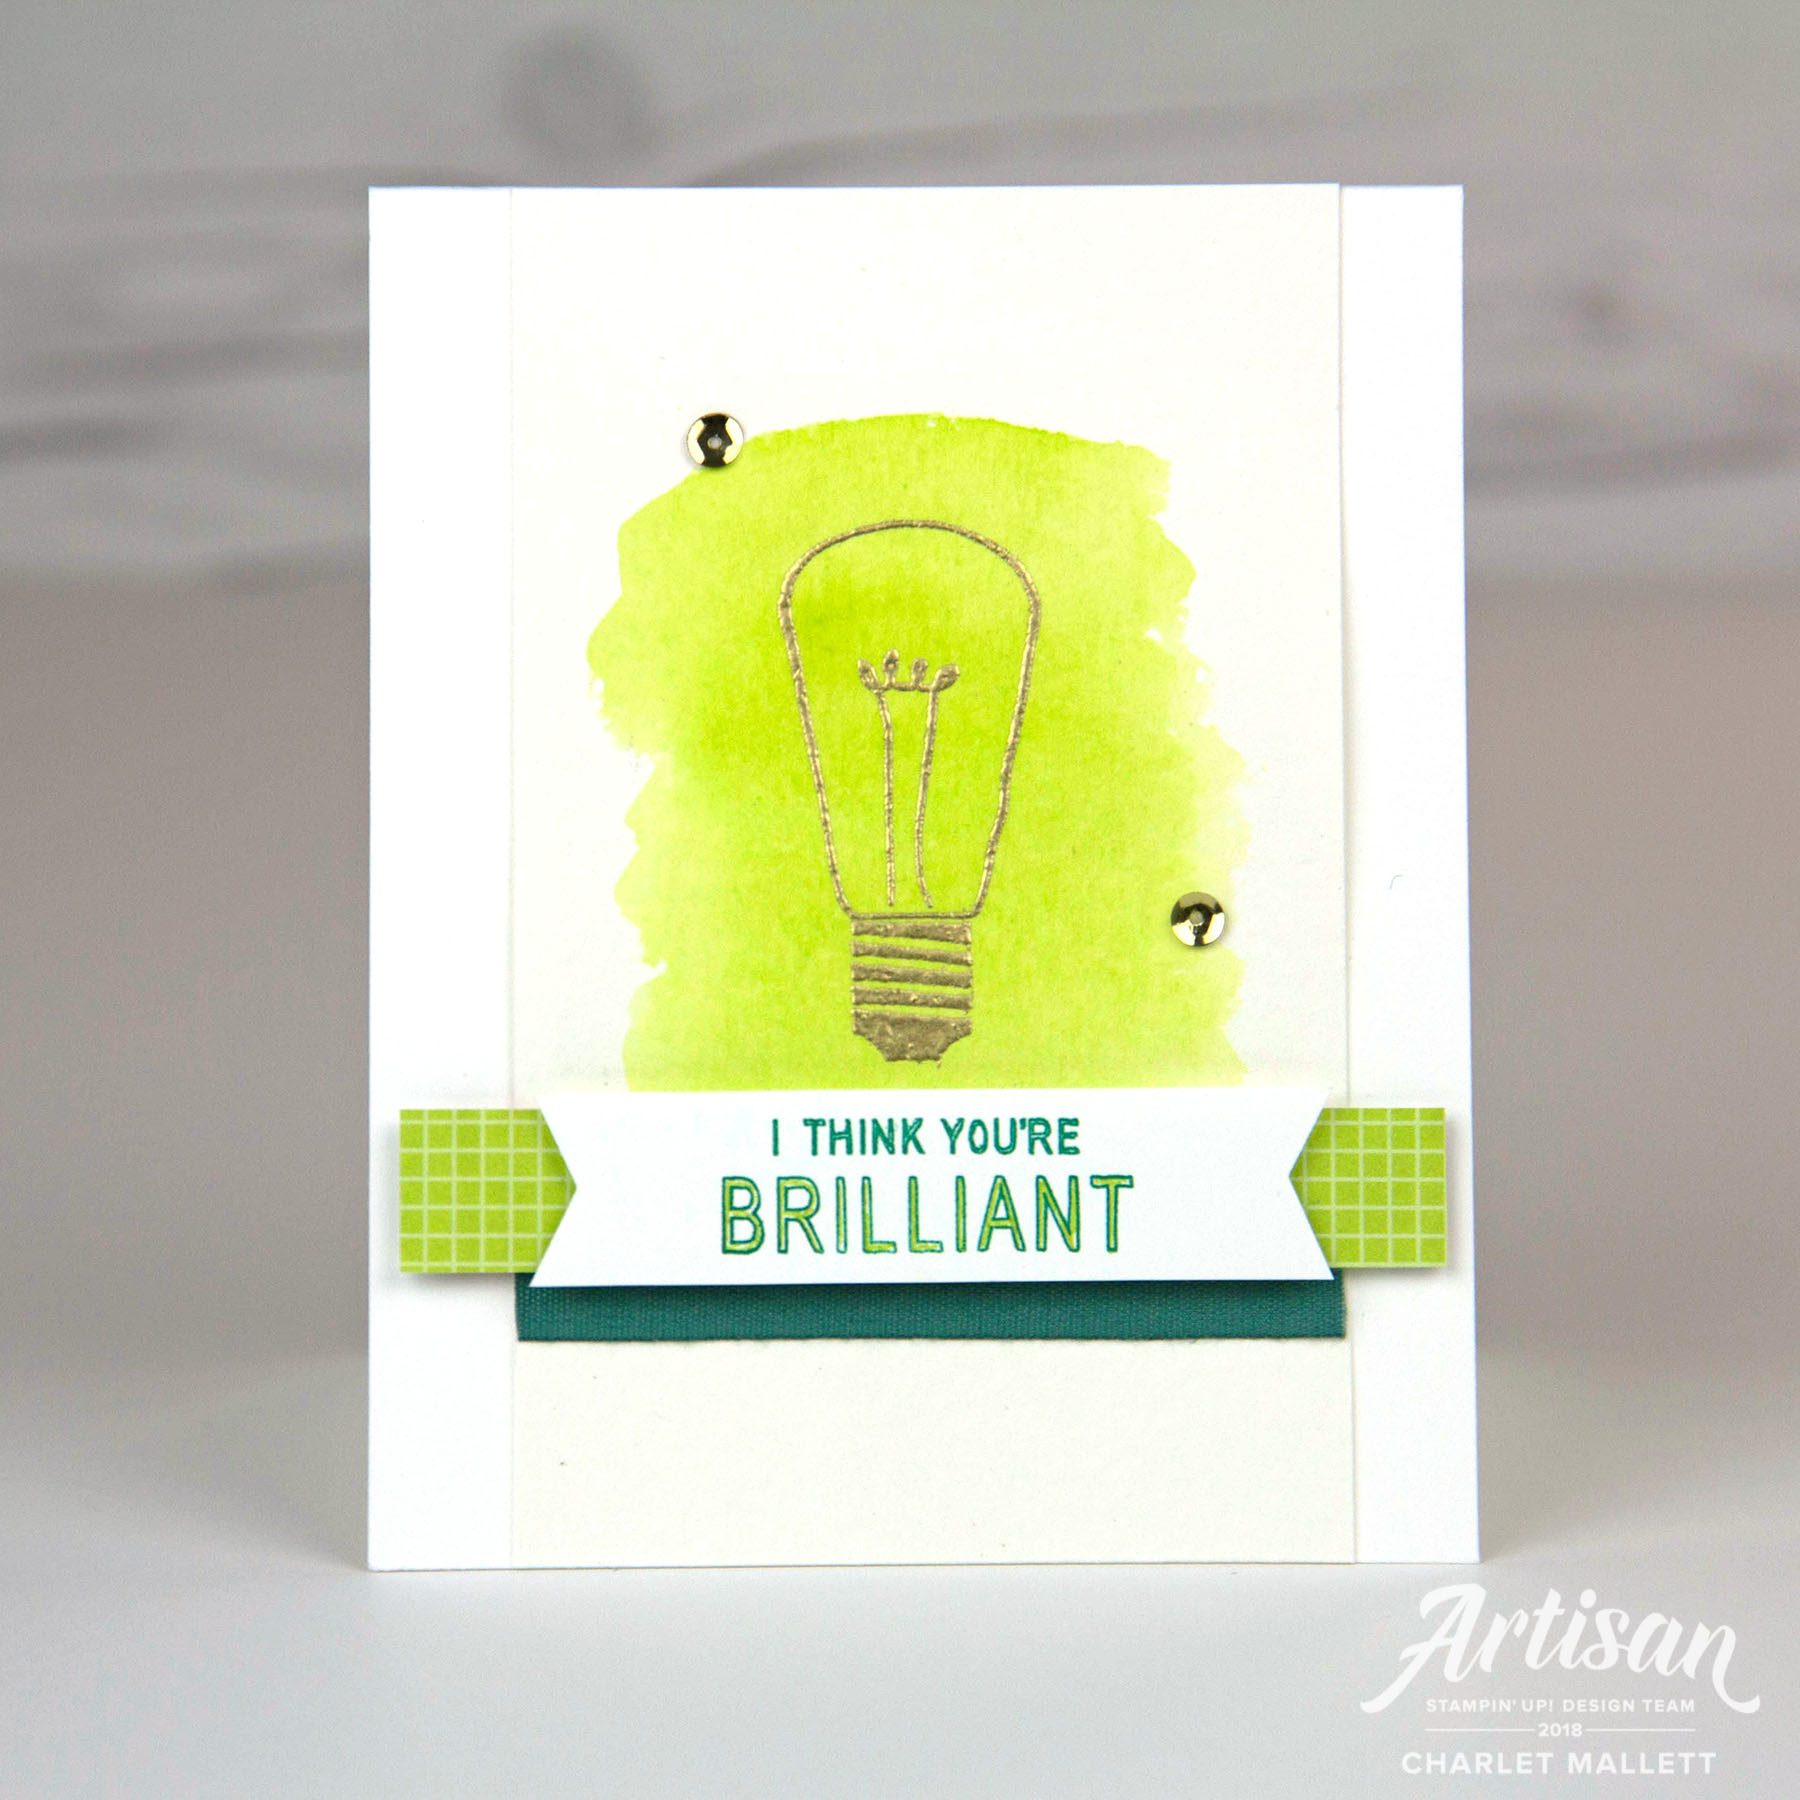 Watts of Occasions - Charlet Mallett - Stampin' Up! Lightbulb I think You're Brilliant Card